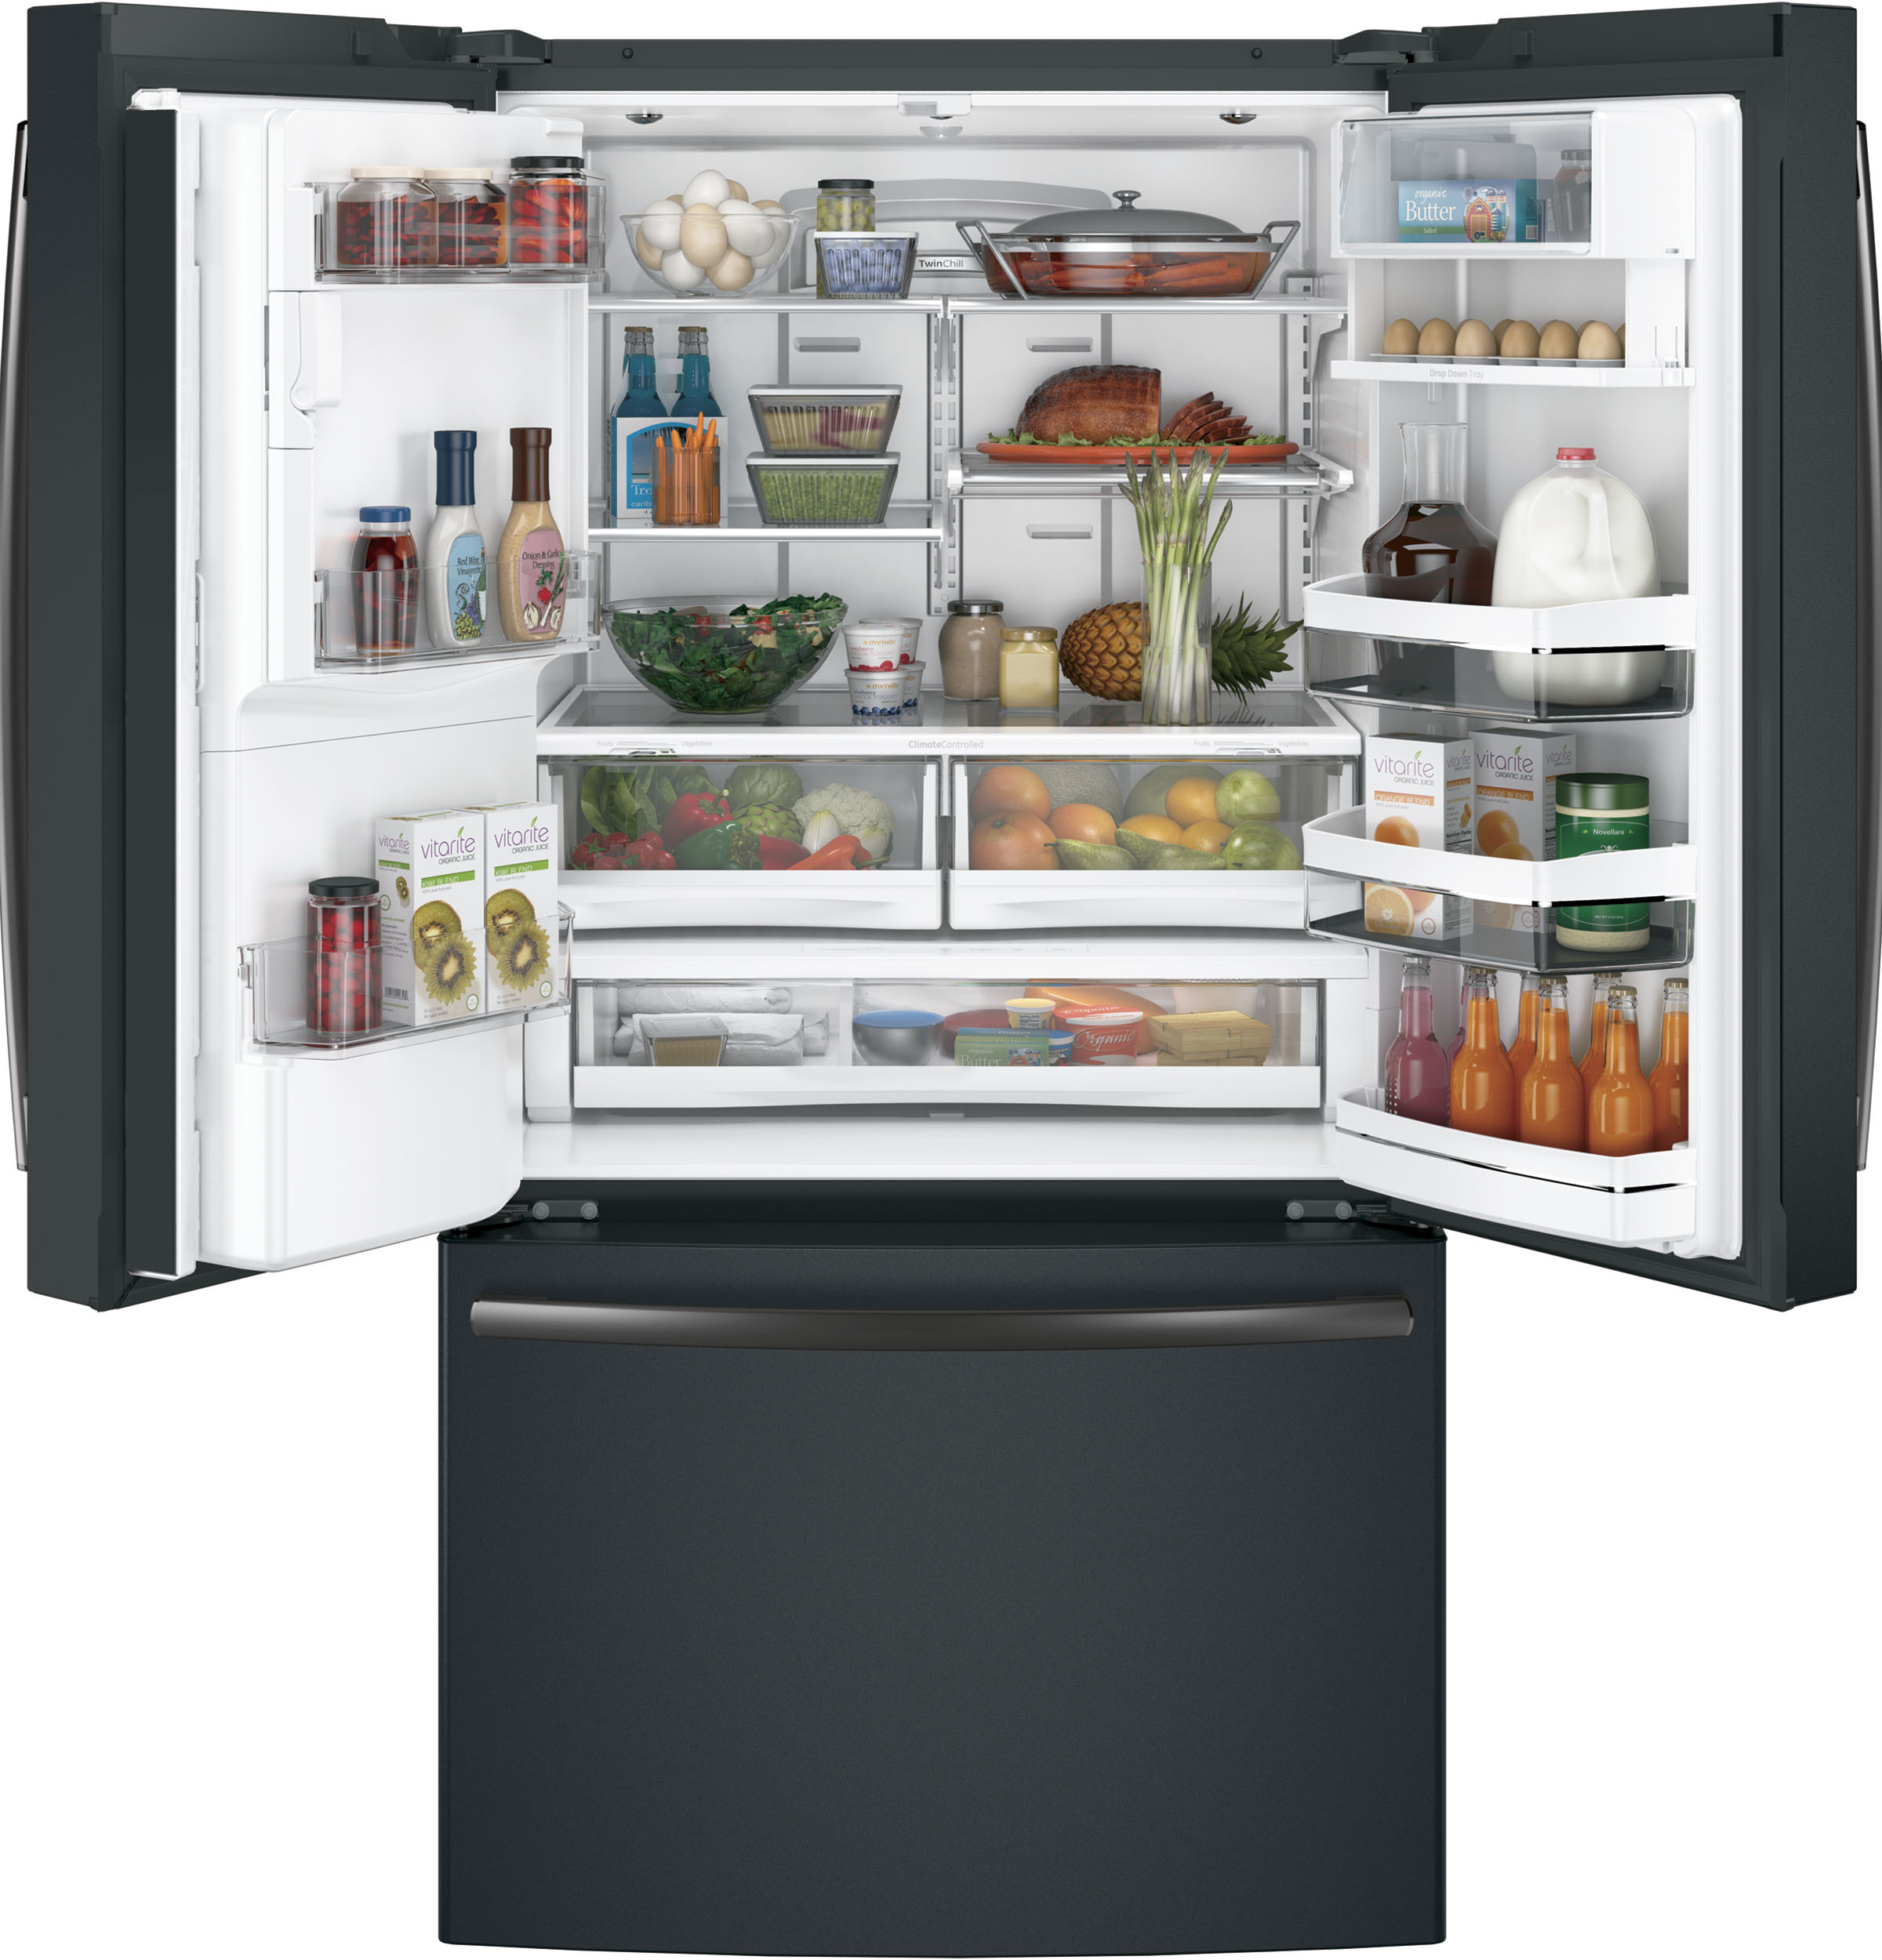 Model: PFE28PELDS | GE Profile GE Profile™ Series ENERGY STAR®  French-Door Refrigerator with Keurig®  Brewing System